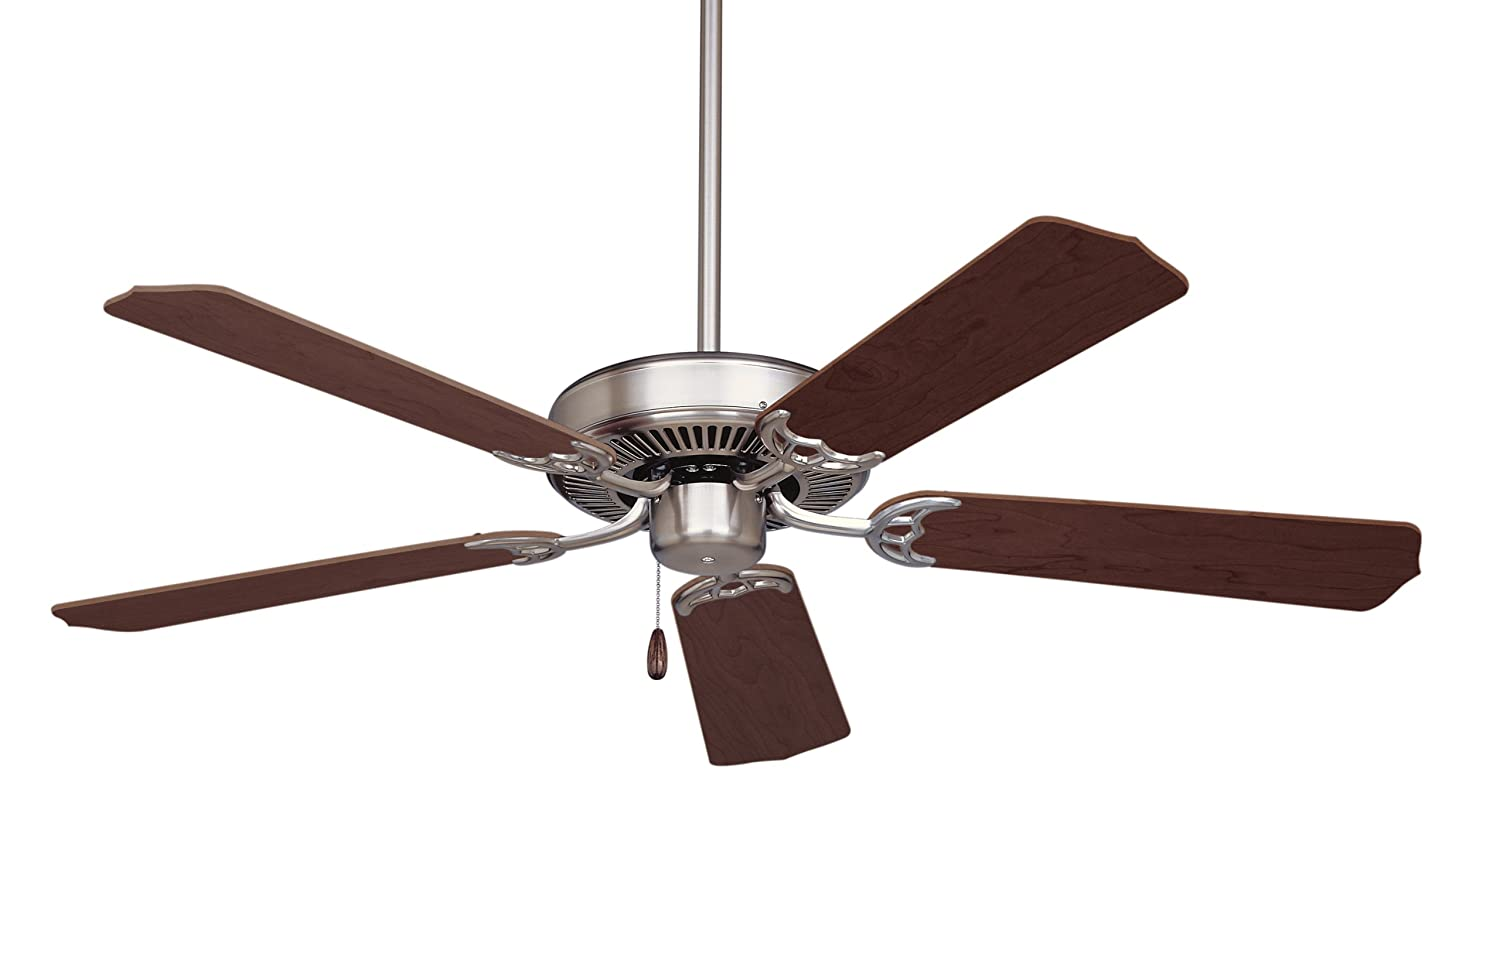 Emerson ceiling fans cf700bs builder 52 inch energy star ceiling fan emerson ceiling fans cf700bs builder 52 inch energy star ceiling fan light kit adaptable brushed steel finish amazon mozeypictures Images